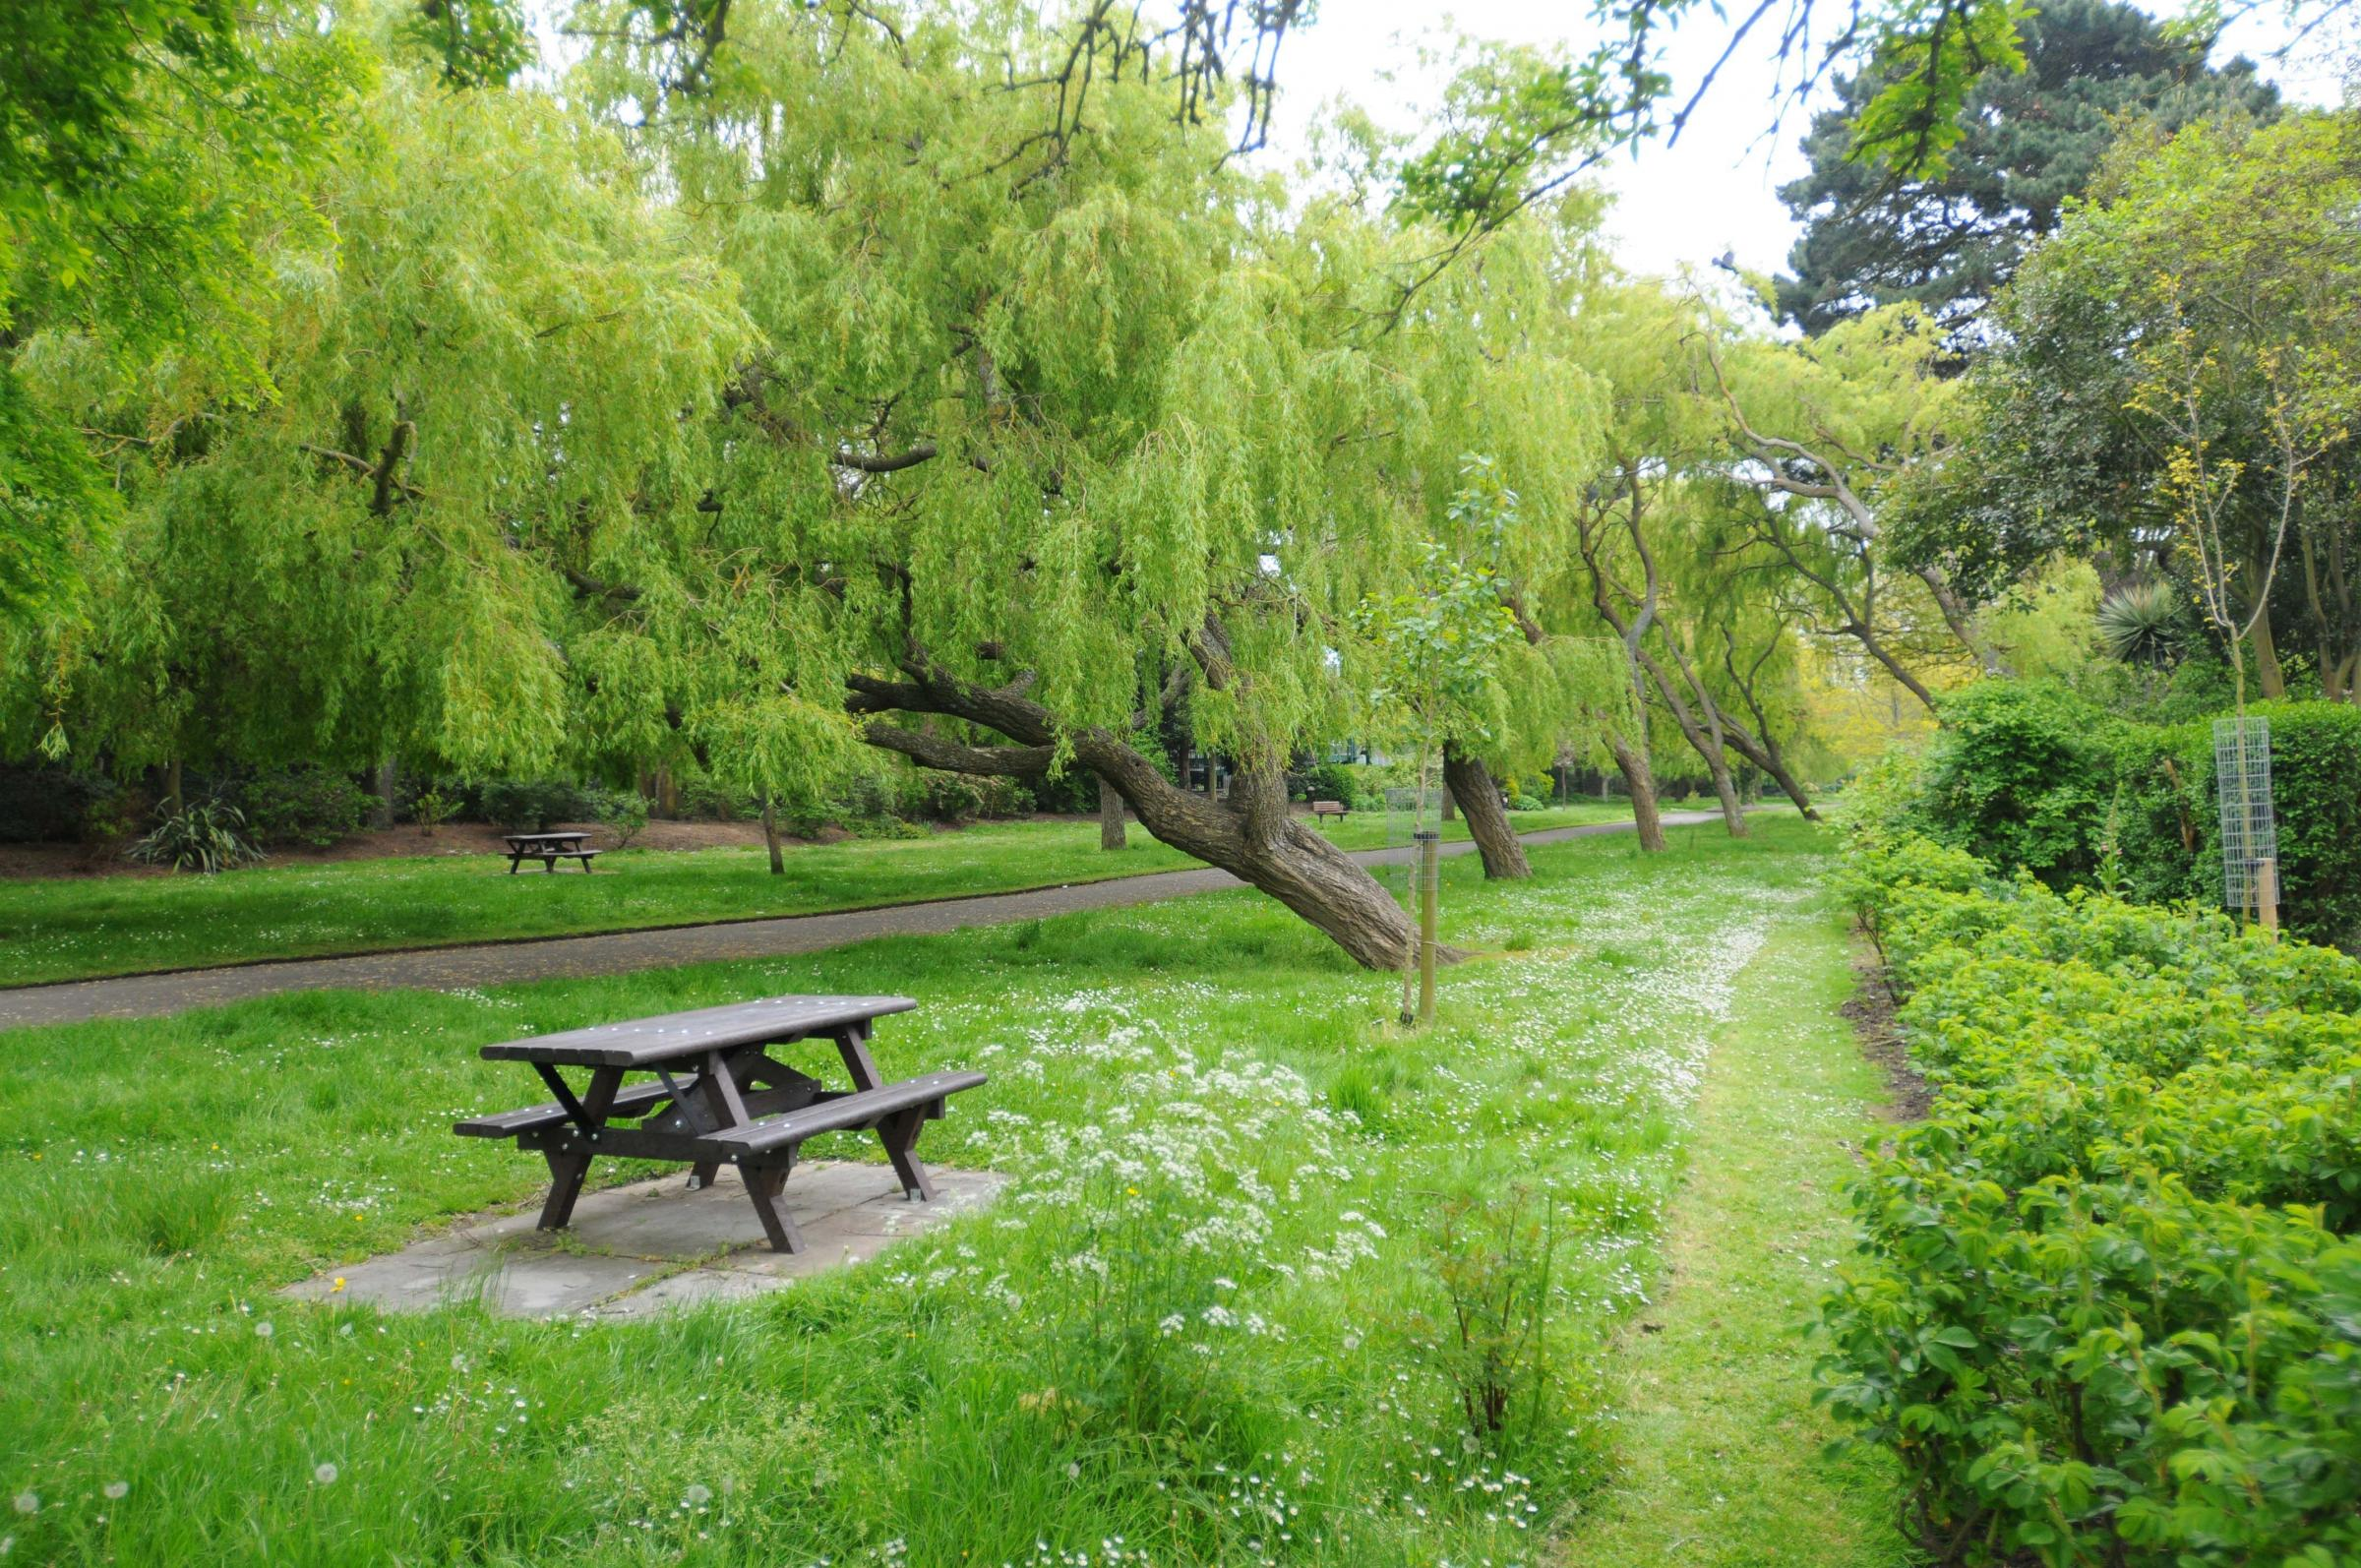 Discover how you can use nature to enjoy life at Picnic in the Park spin-off event